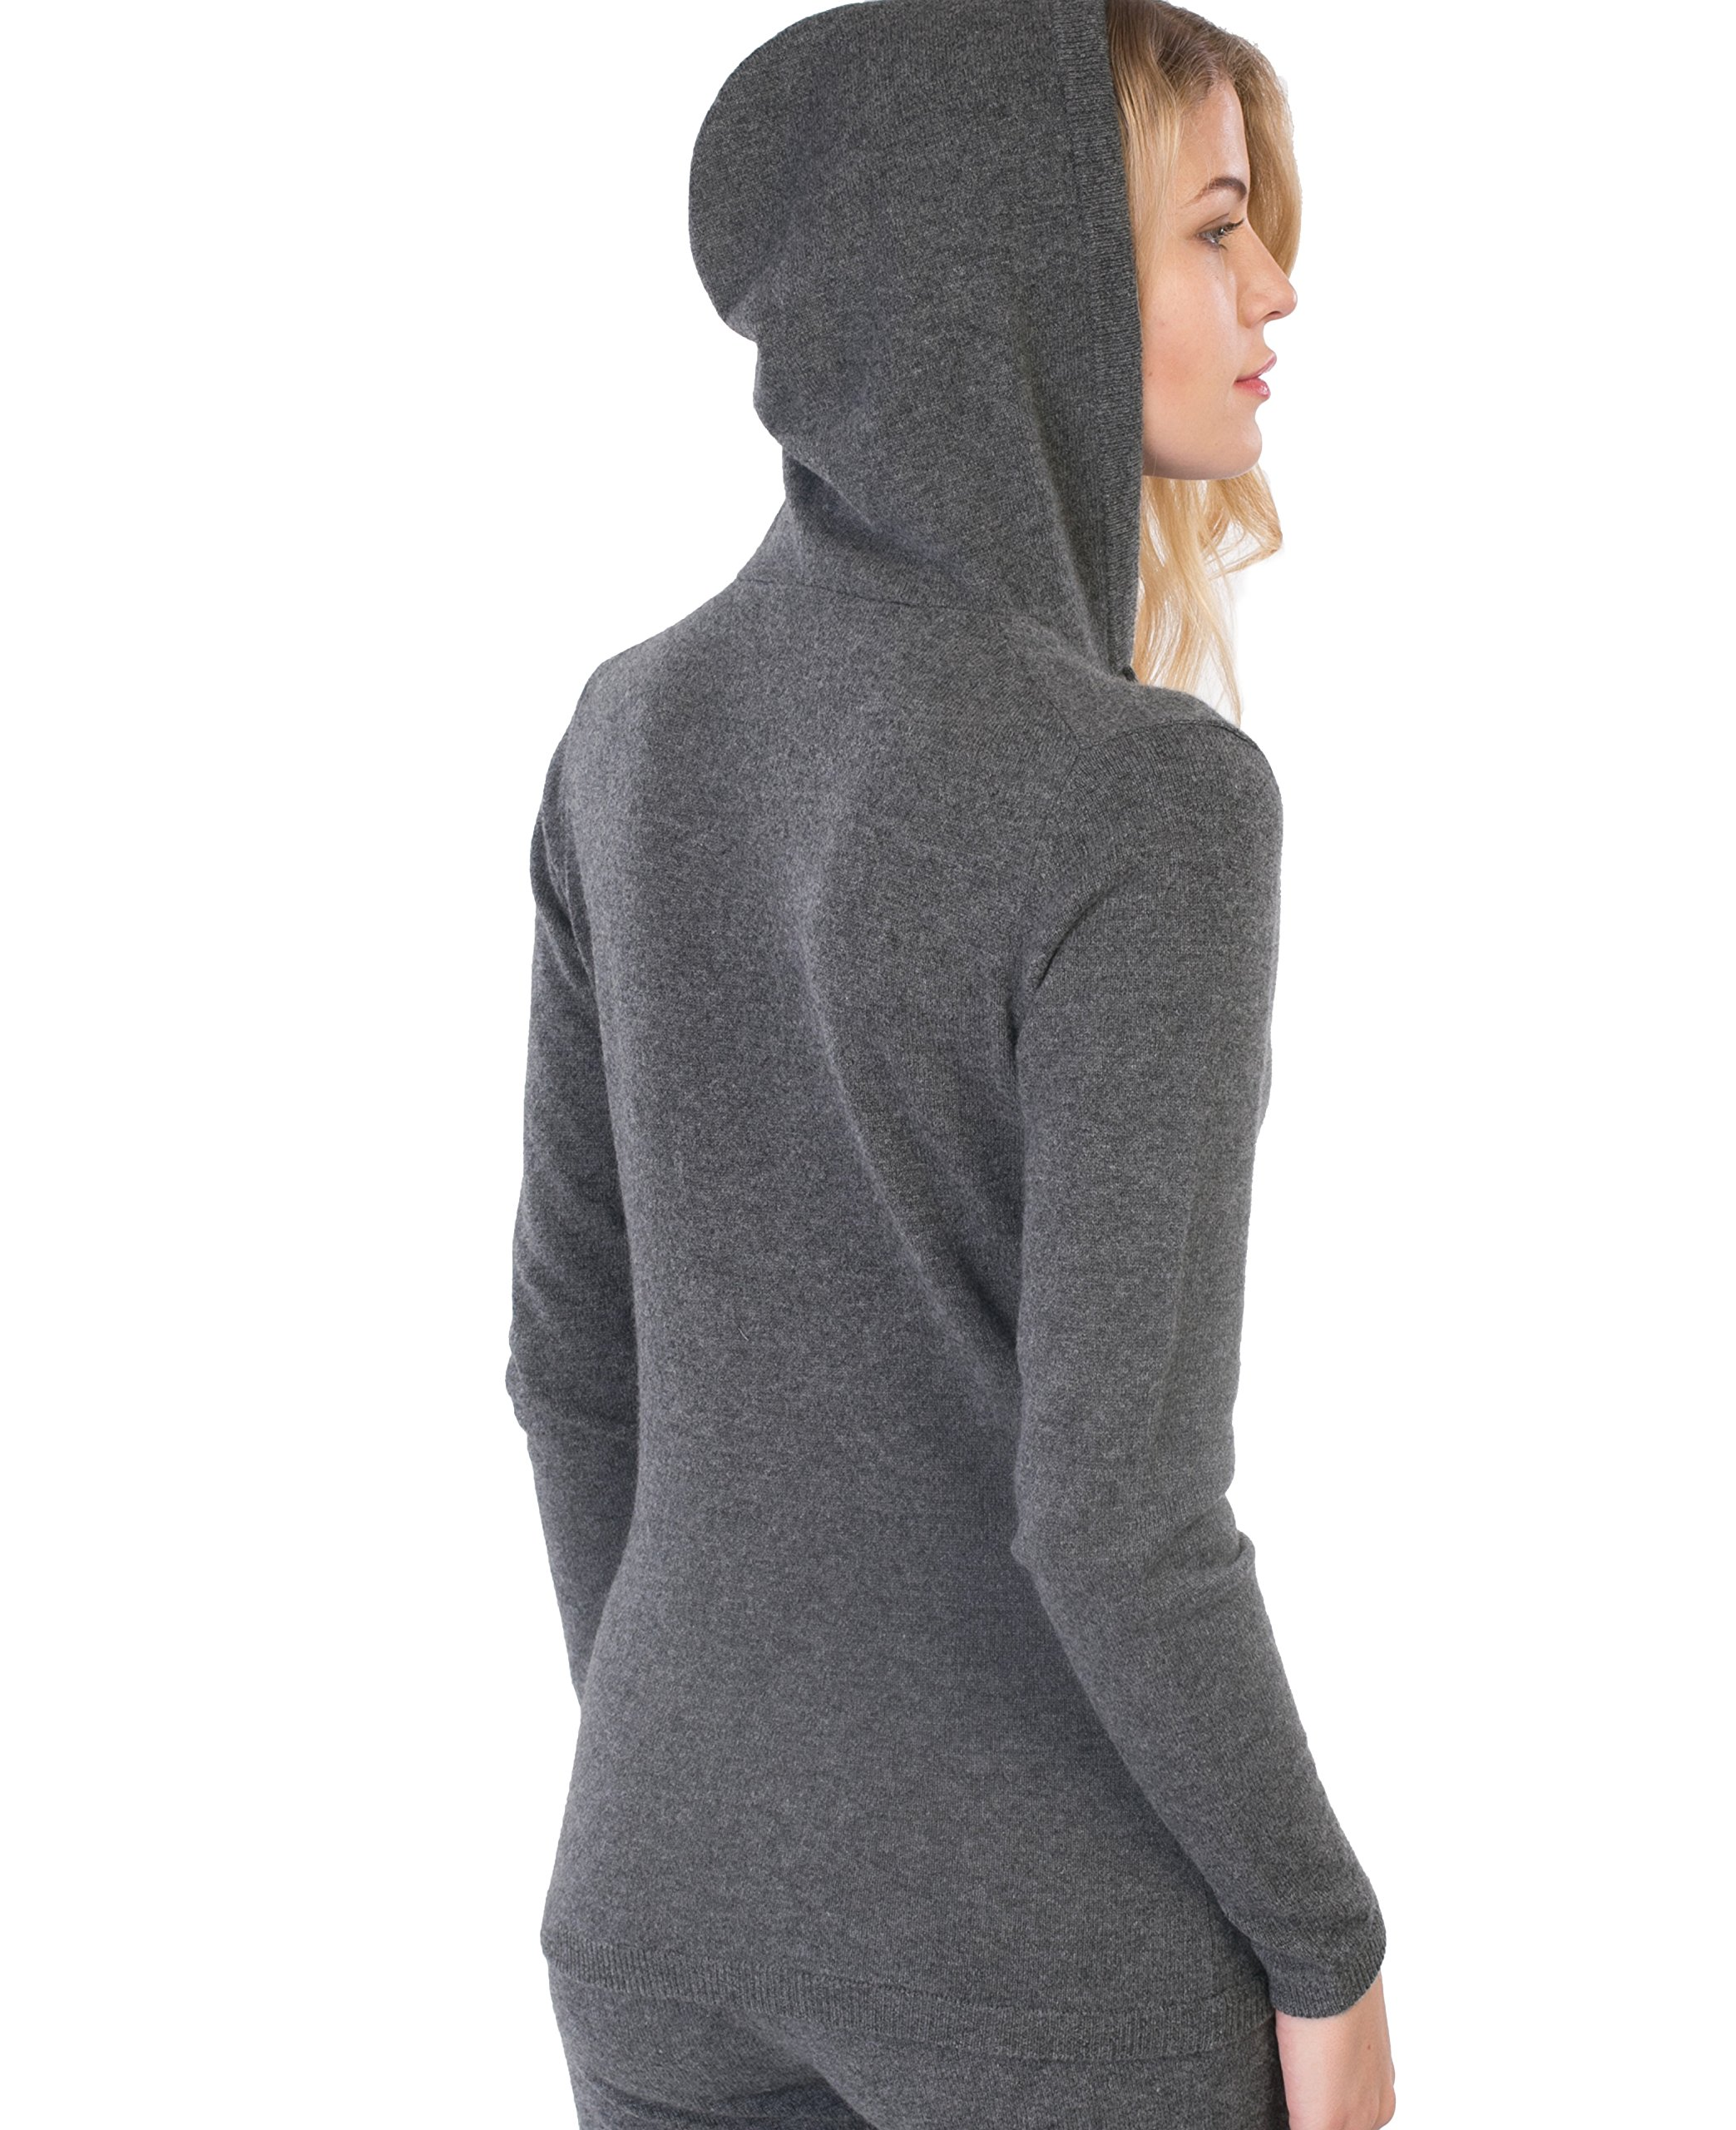 cashmere 4 U Women's 100% Cashmere V Neck Hoodie Sweater Pullover (X-Large, Gris Moyen) by cashmere 4 U (Image #4)